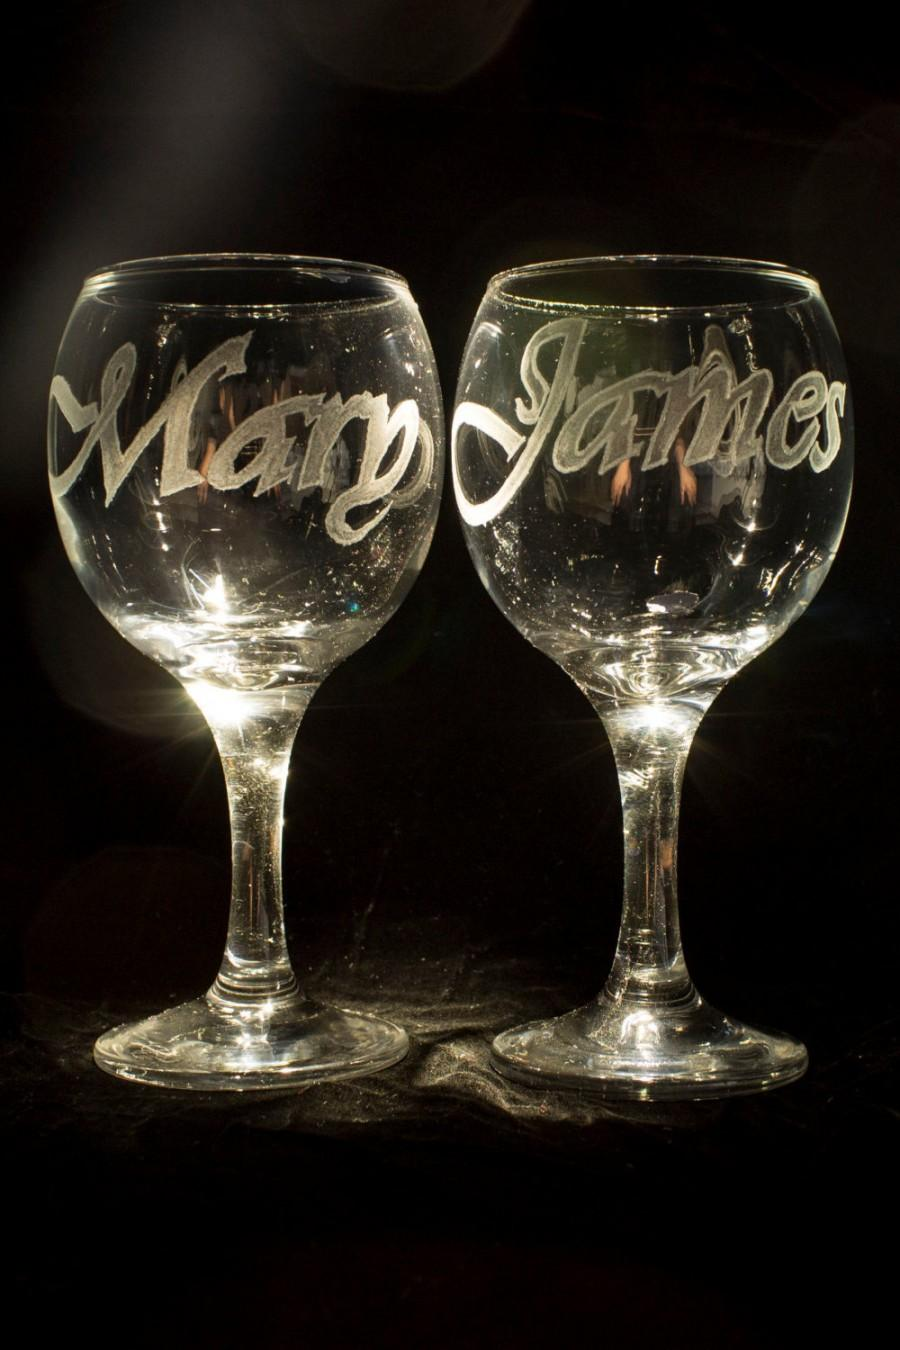 Mariage - Personalized Wine Glasses Hand Engraved Custom Wedding Glasses Toasting Glasses Wine Glasses, House Warming Wedding Gift Decorations